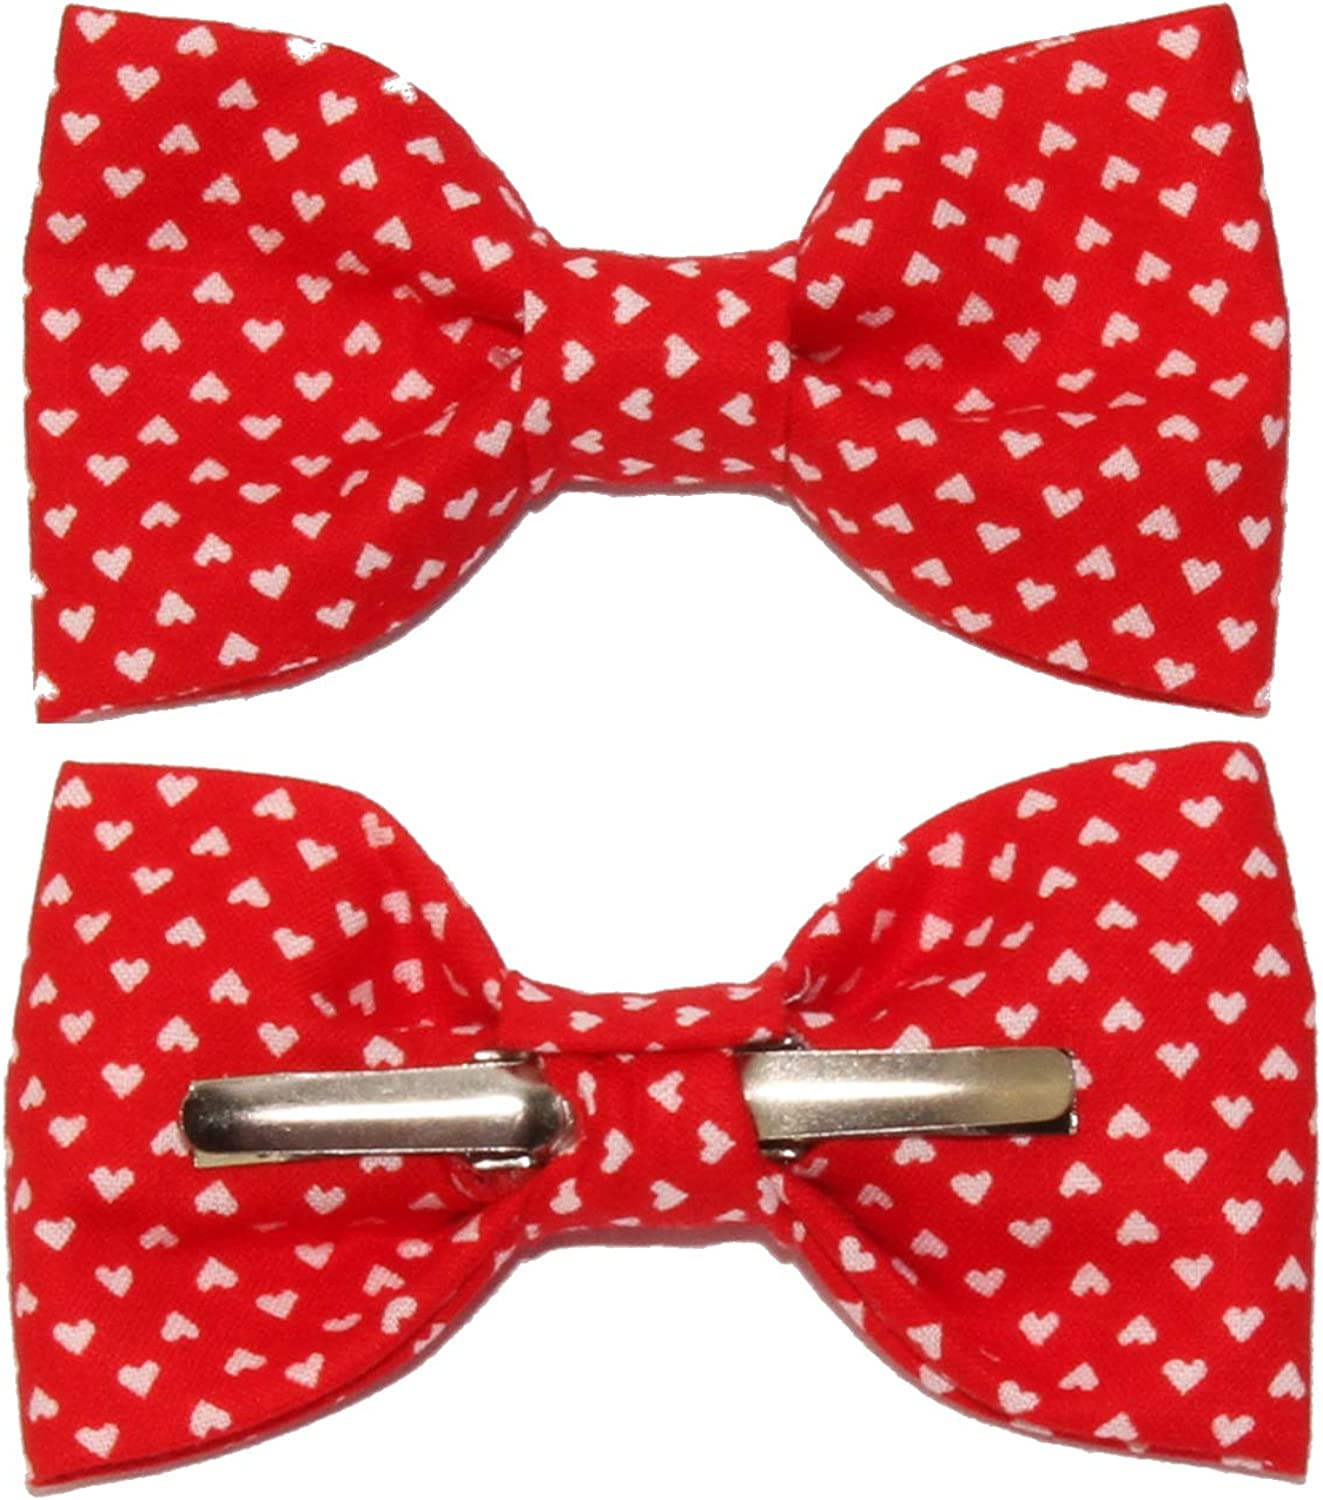 Toddler Boy 4T 5T Peony Pink Clip On Cotton Bow Tie Made In The USA